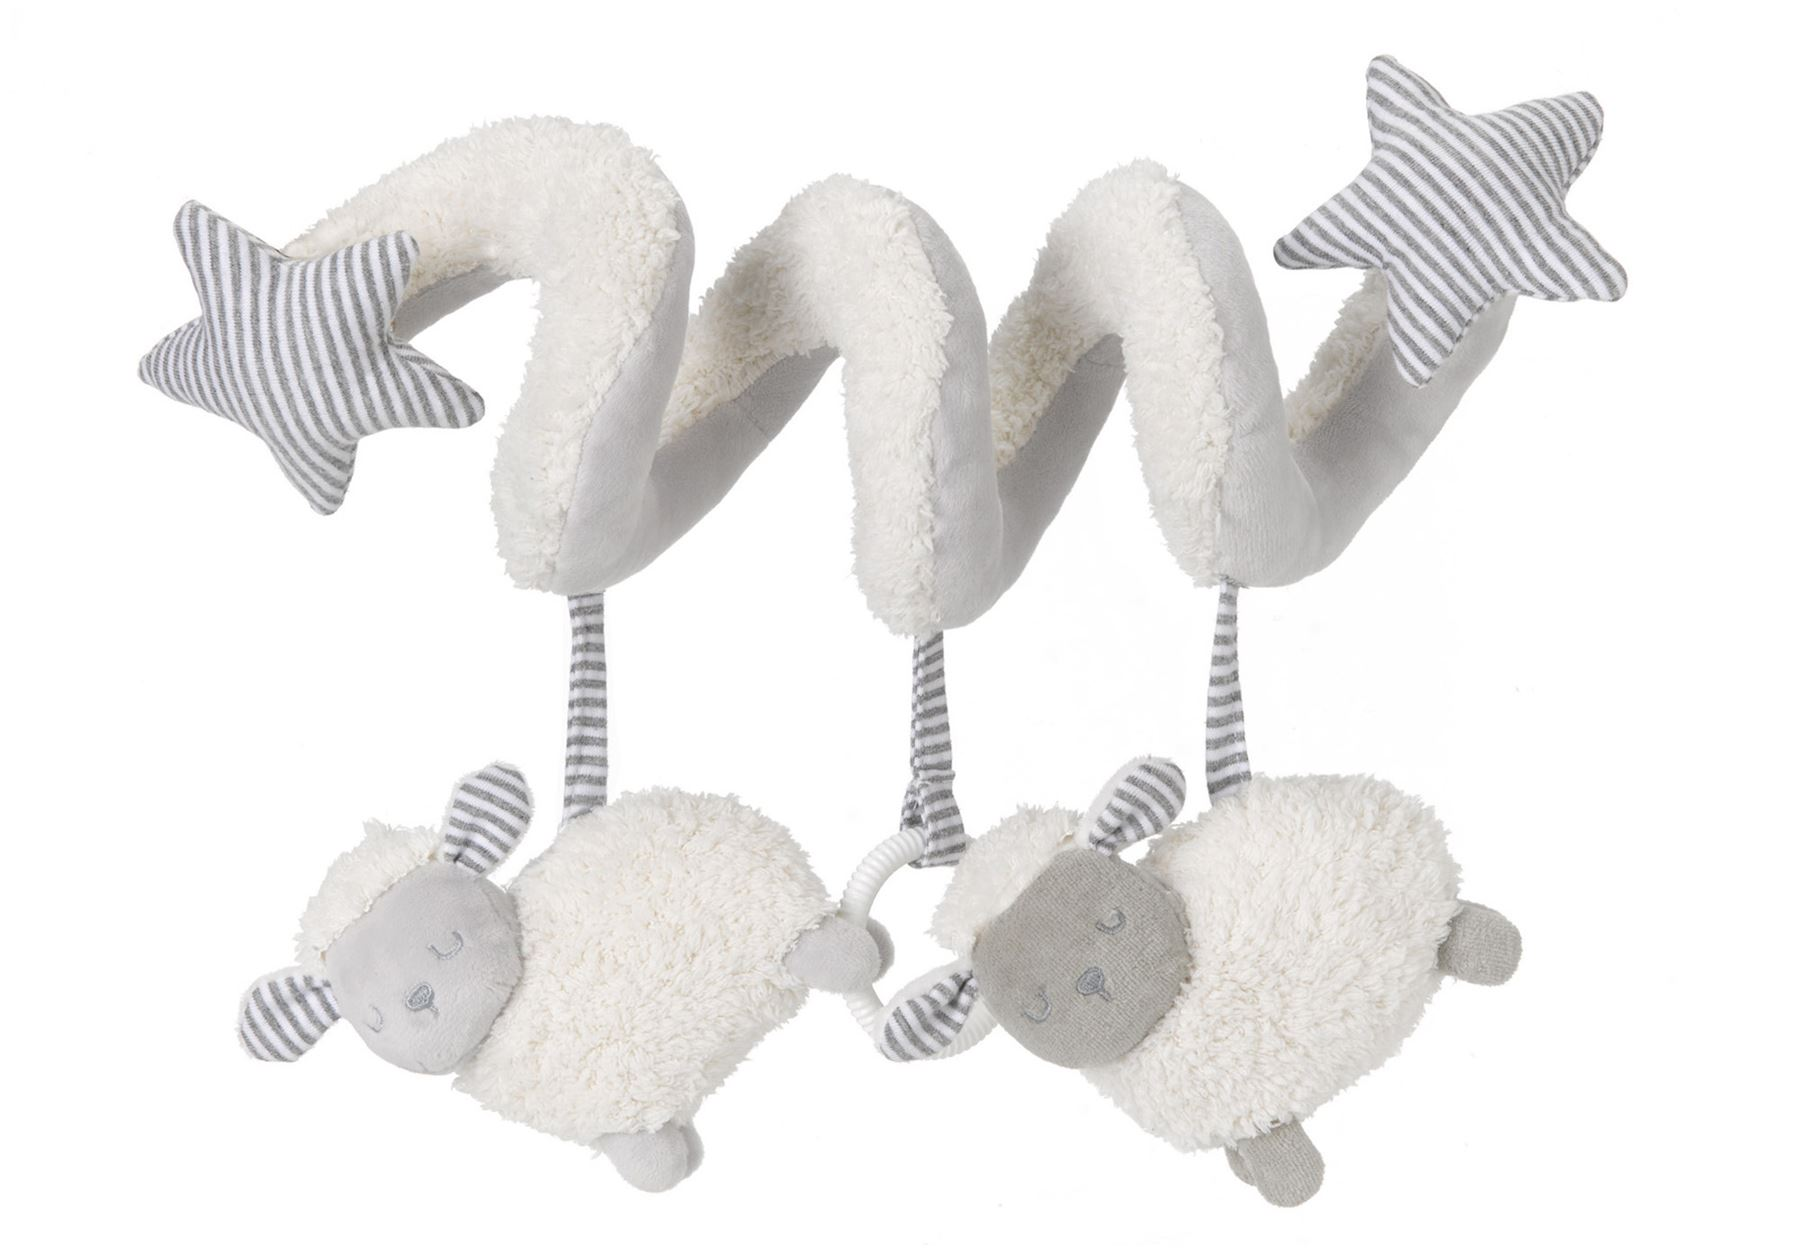 East Coast SILVERCLOUD COUNTING SHEEP COMFORTER Baby Child Toy BN